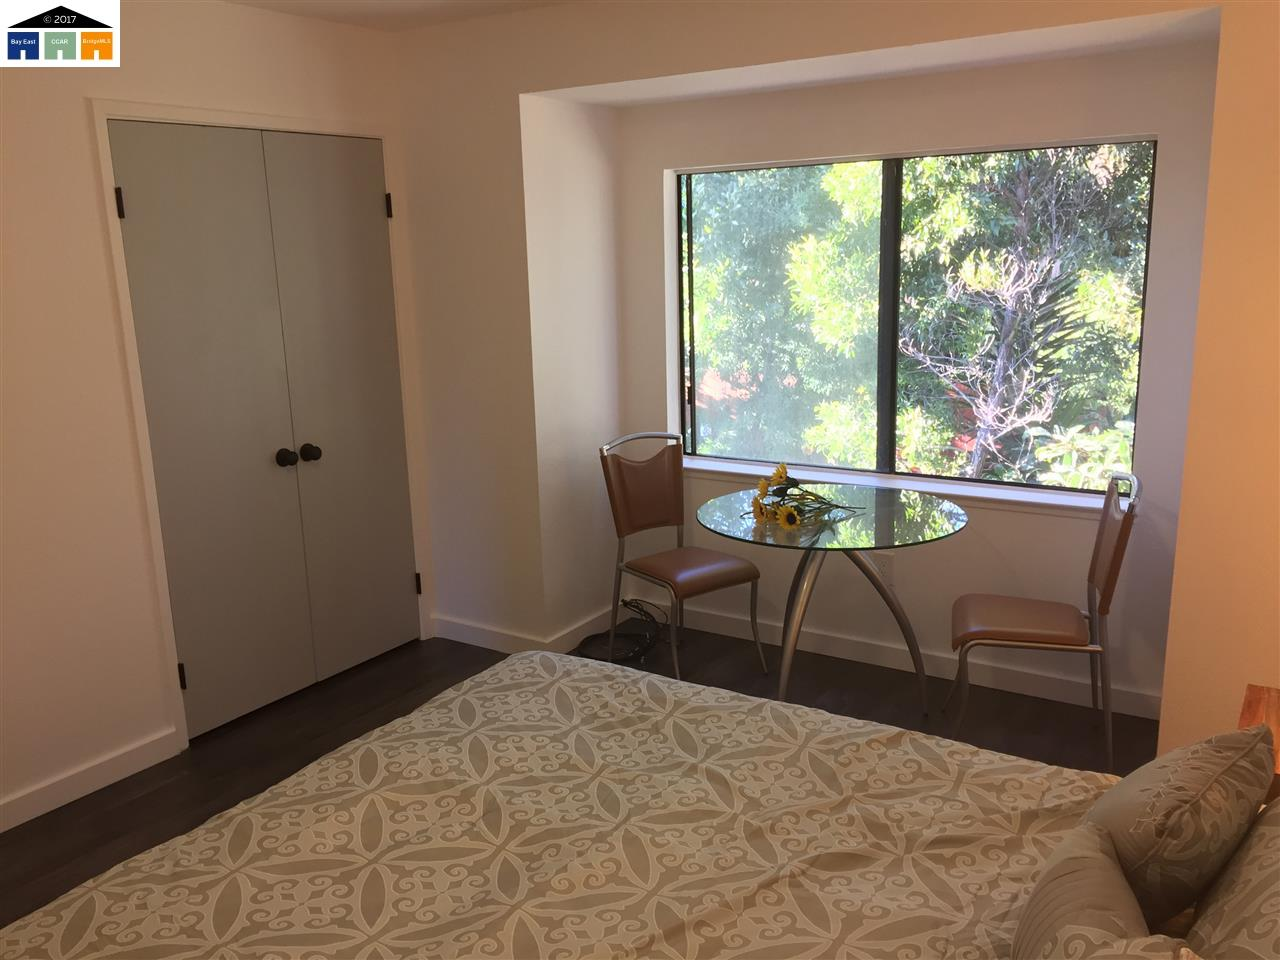 Additional photo for property listing at 3129 Cuthbert 3129 Cuthbert Oakland, California 94602 Estados Unidos